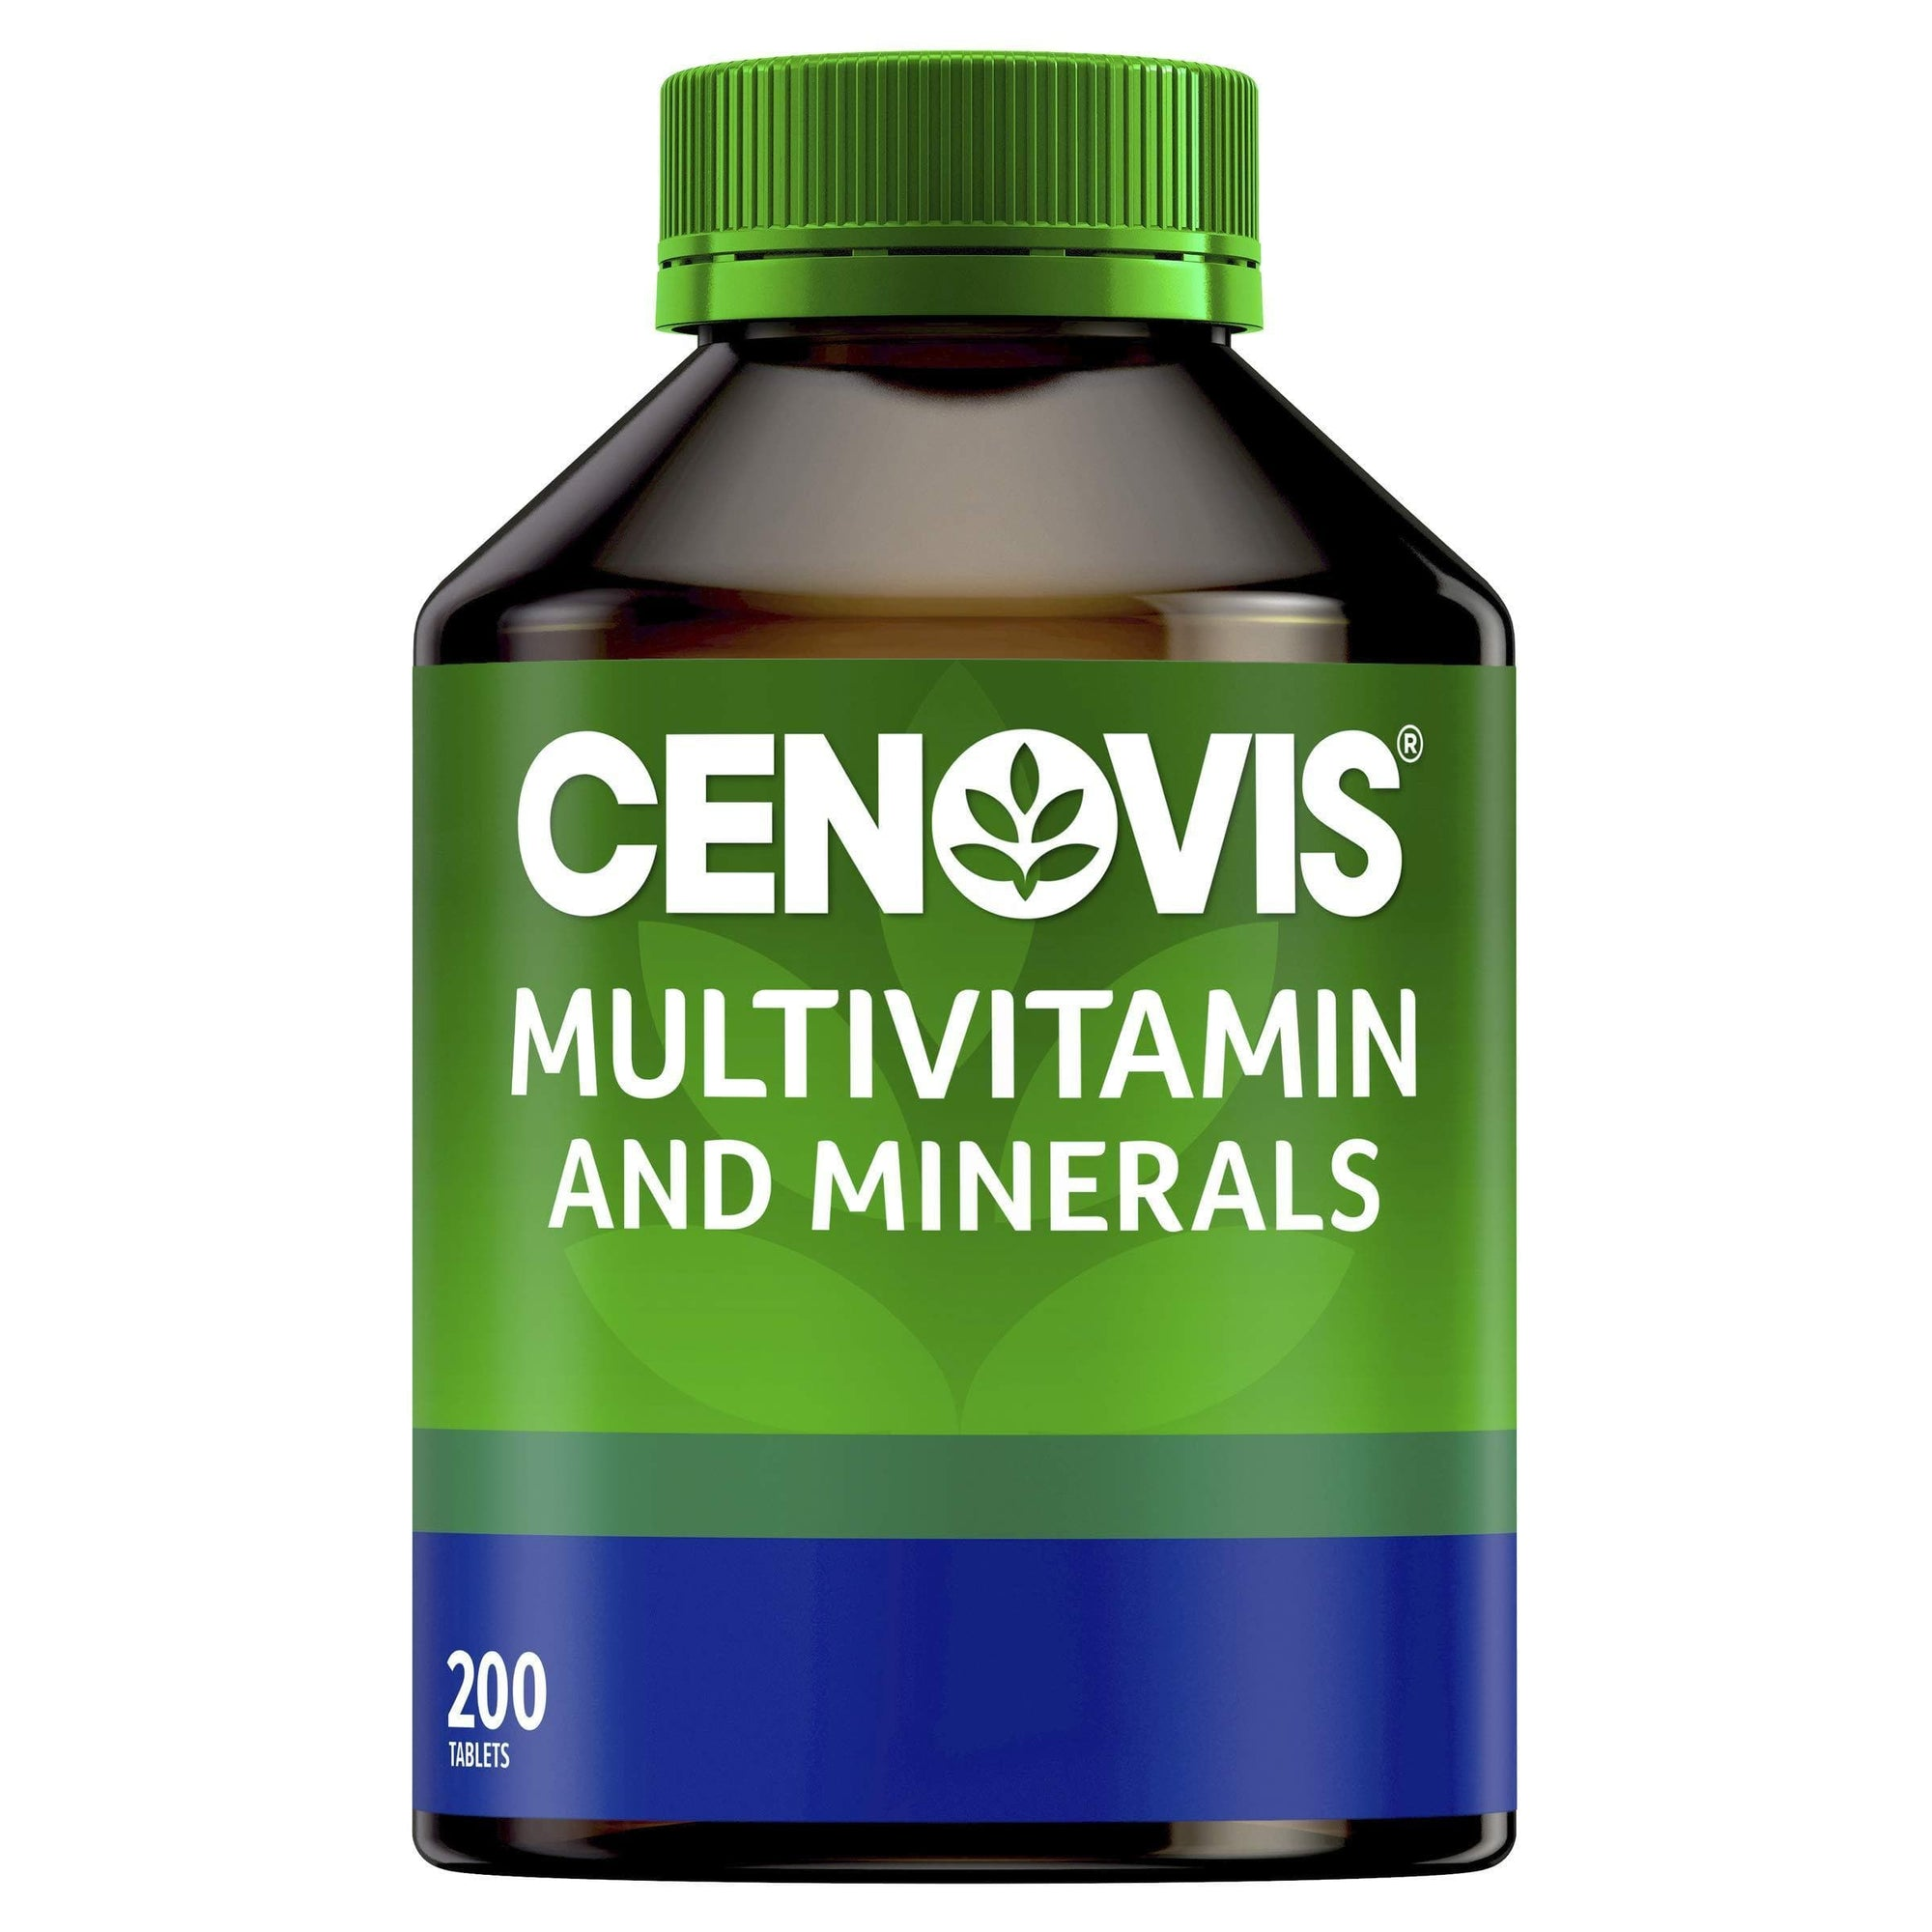 Multivitamins & Minerals By Cenovis